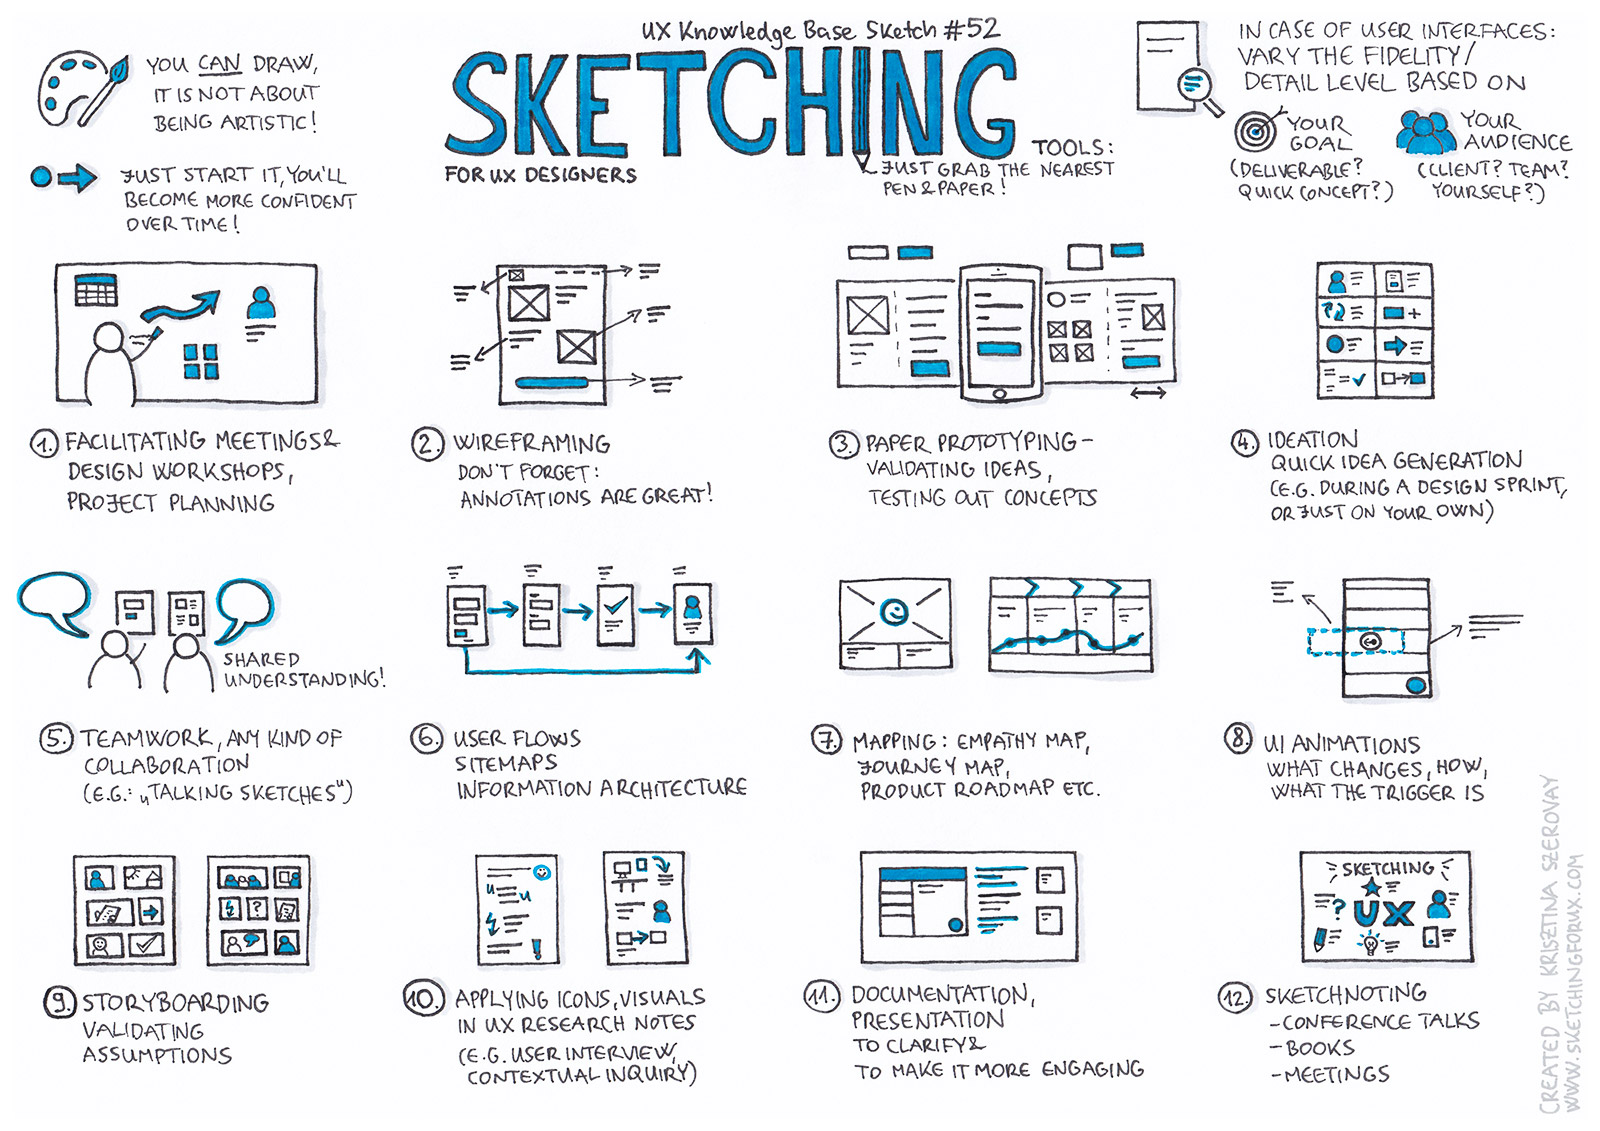 Sketching for UX by Krisztina Szerovay